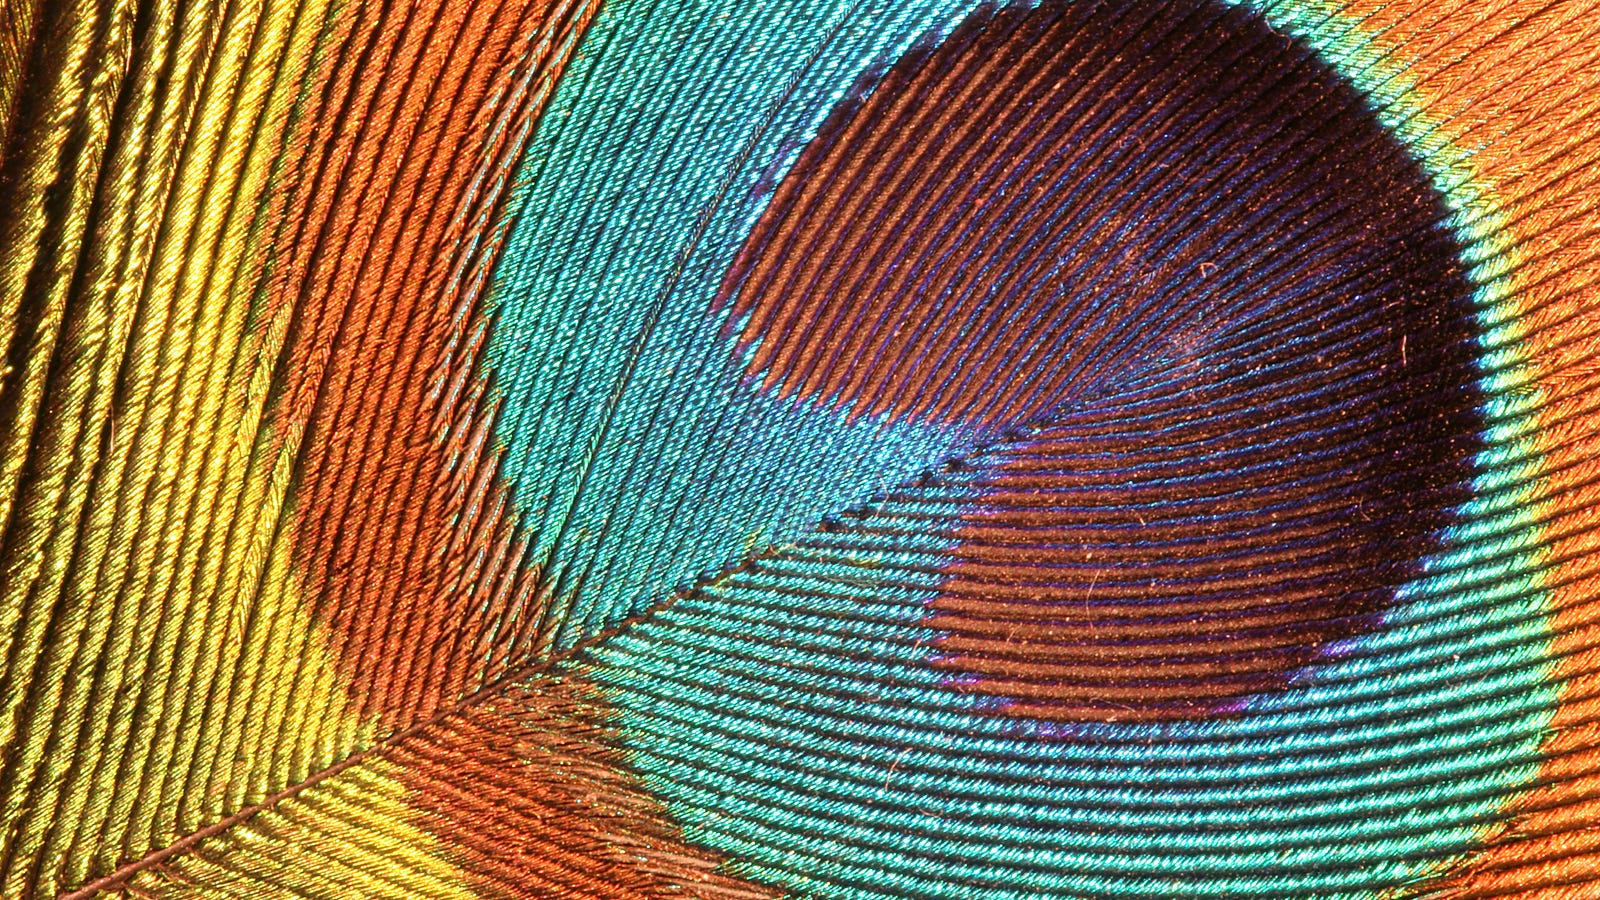 How Nanoscale Optics Create Nature's Most Dazzling Colors